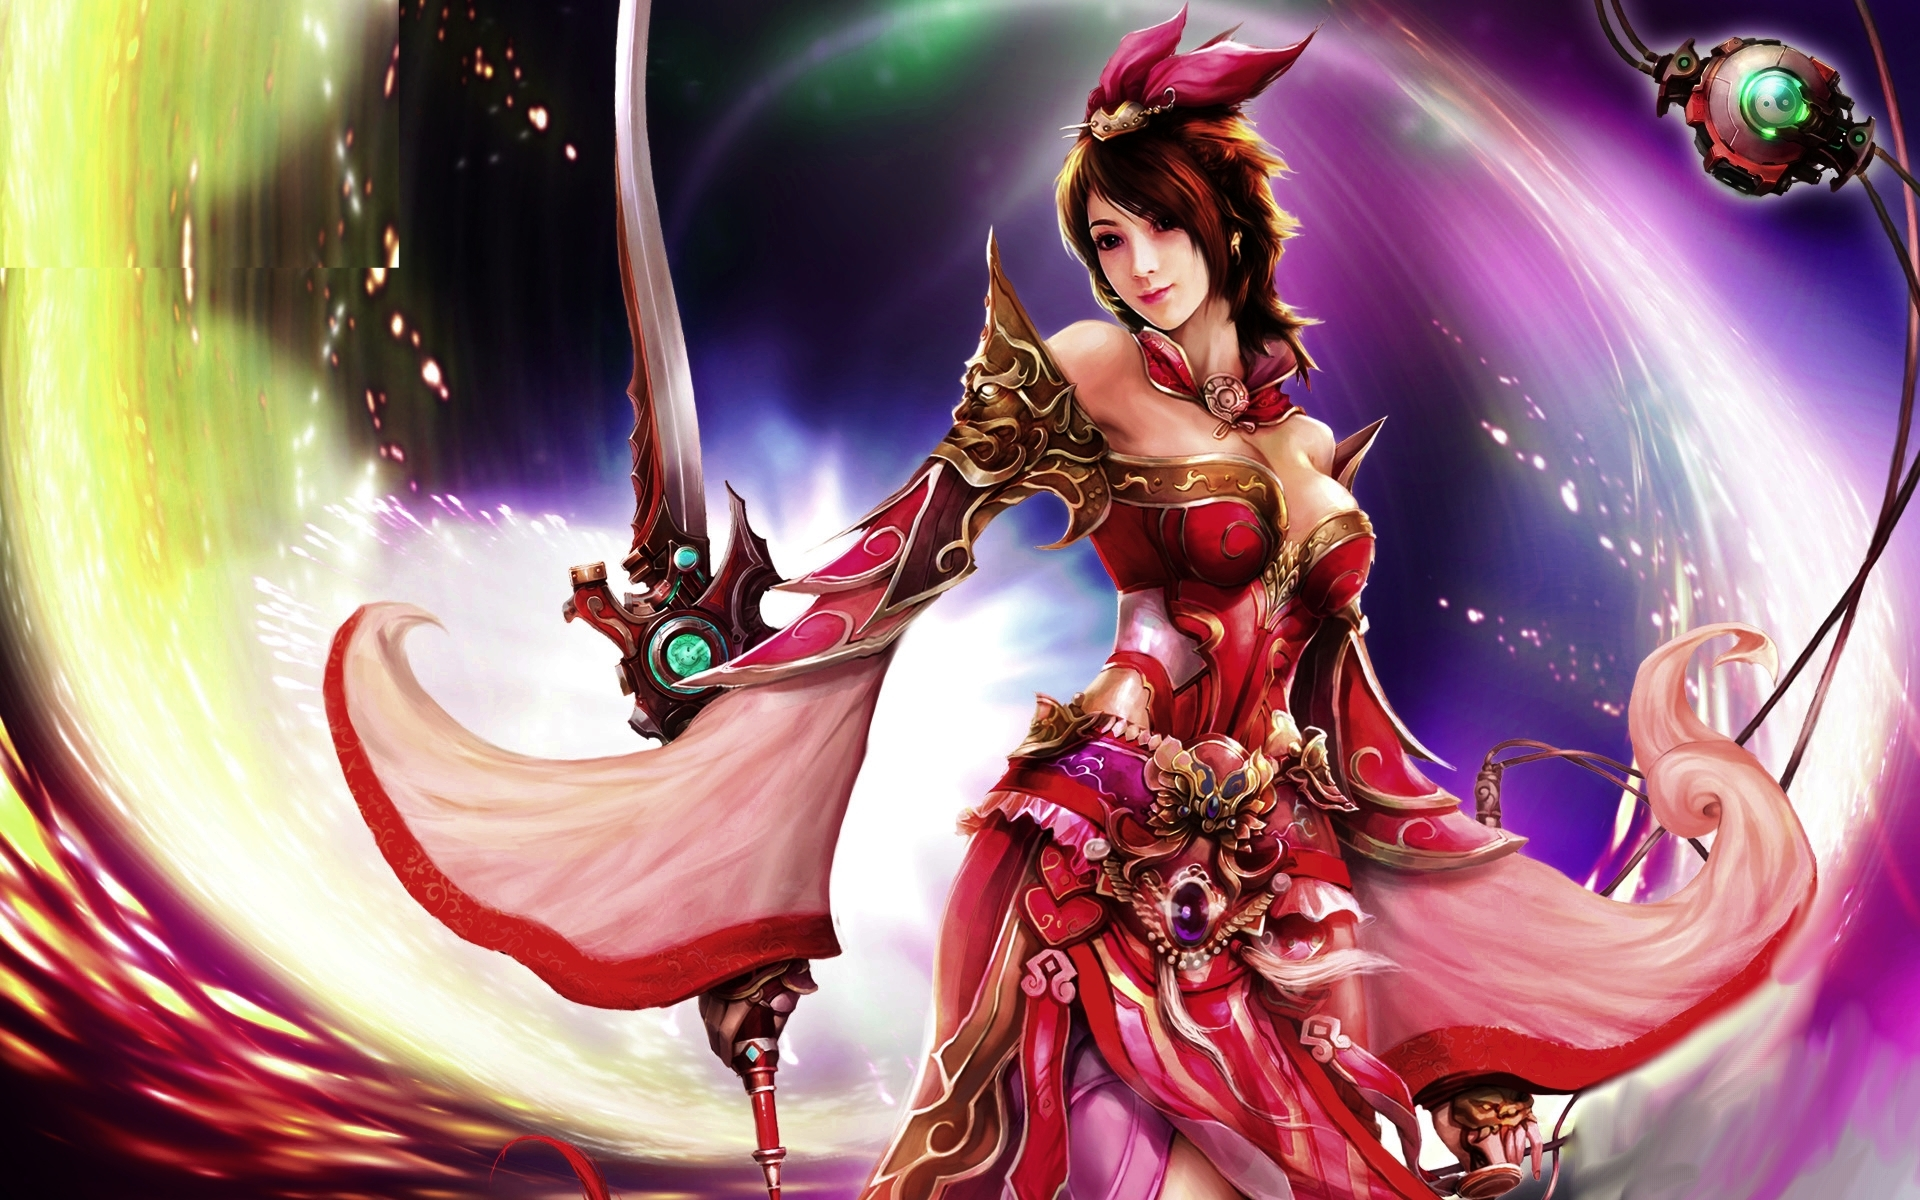 Women warrior hd wallpaper background image 1920x1200 - 3d fantasy wallpaper ...